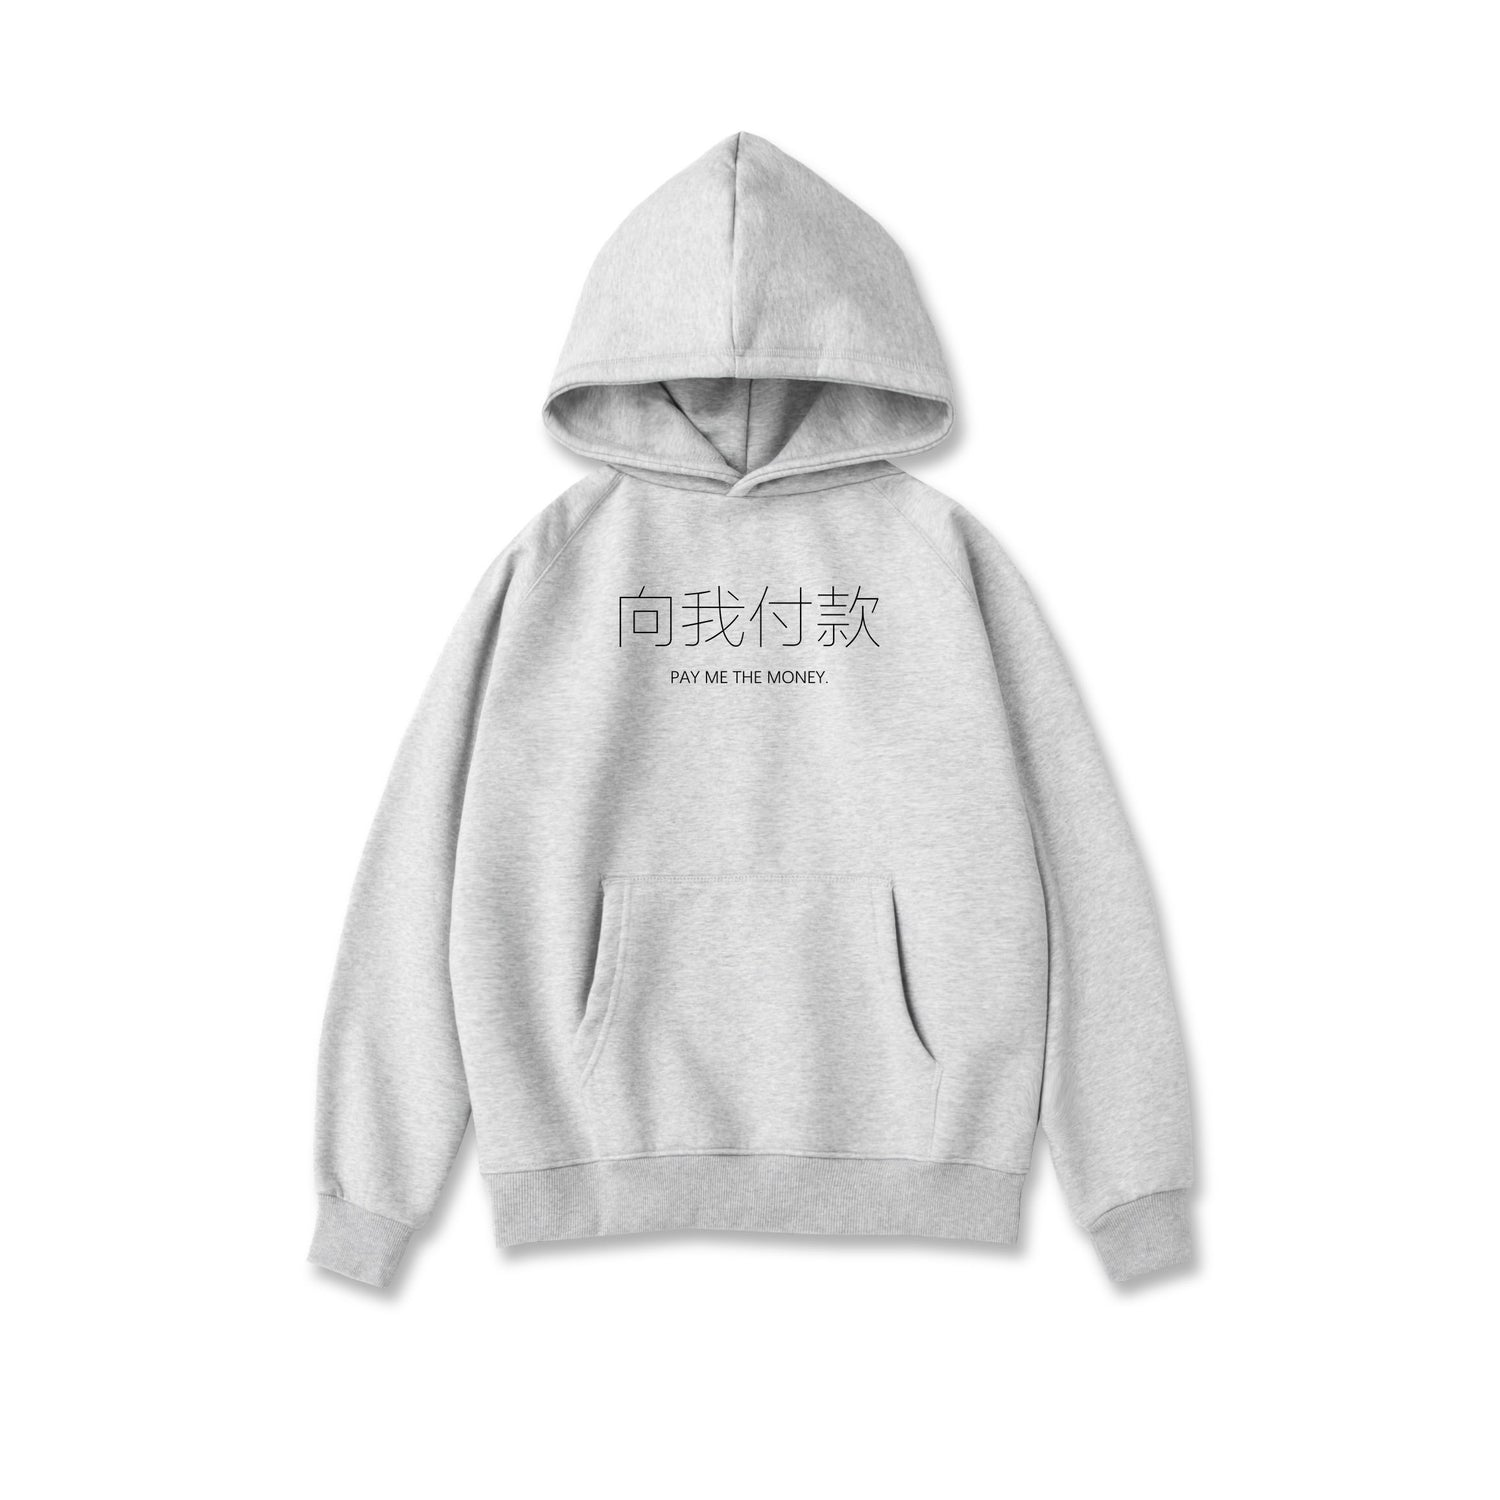 PROD Bldg Hoodie XS / Gray Pay Me the Money